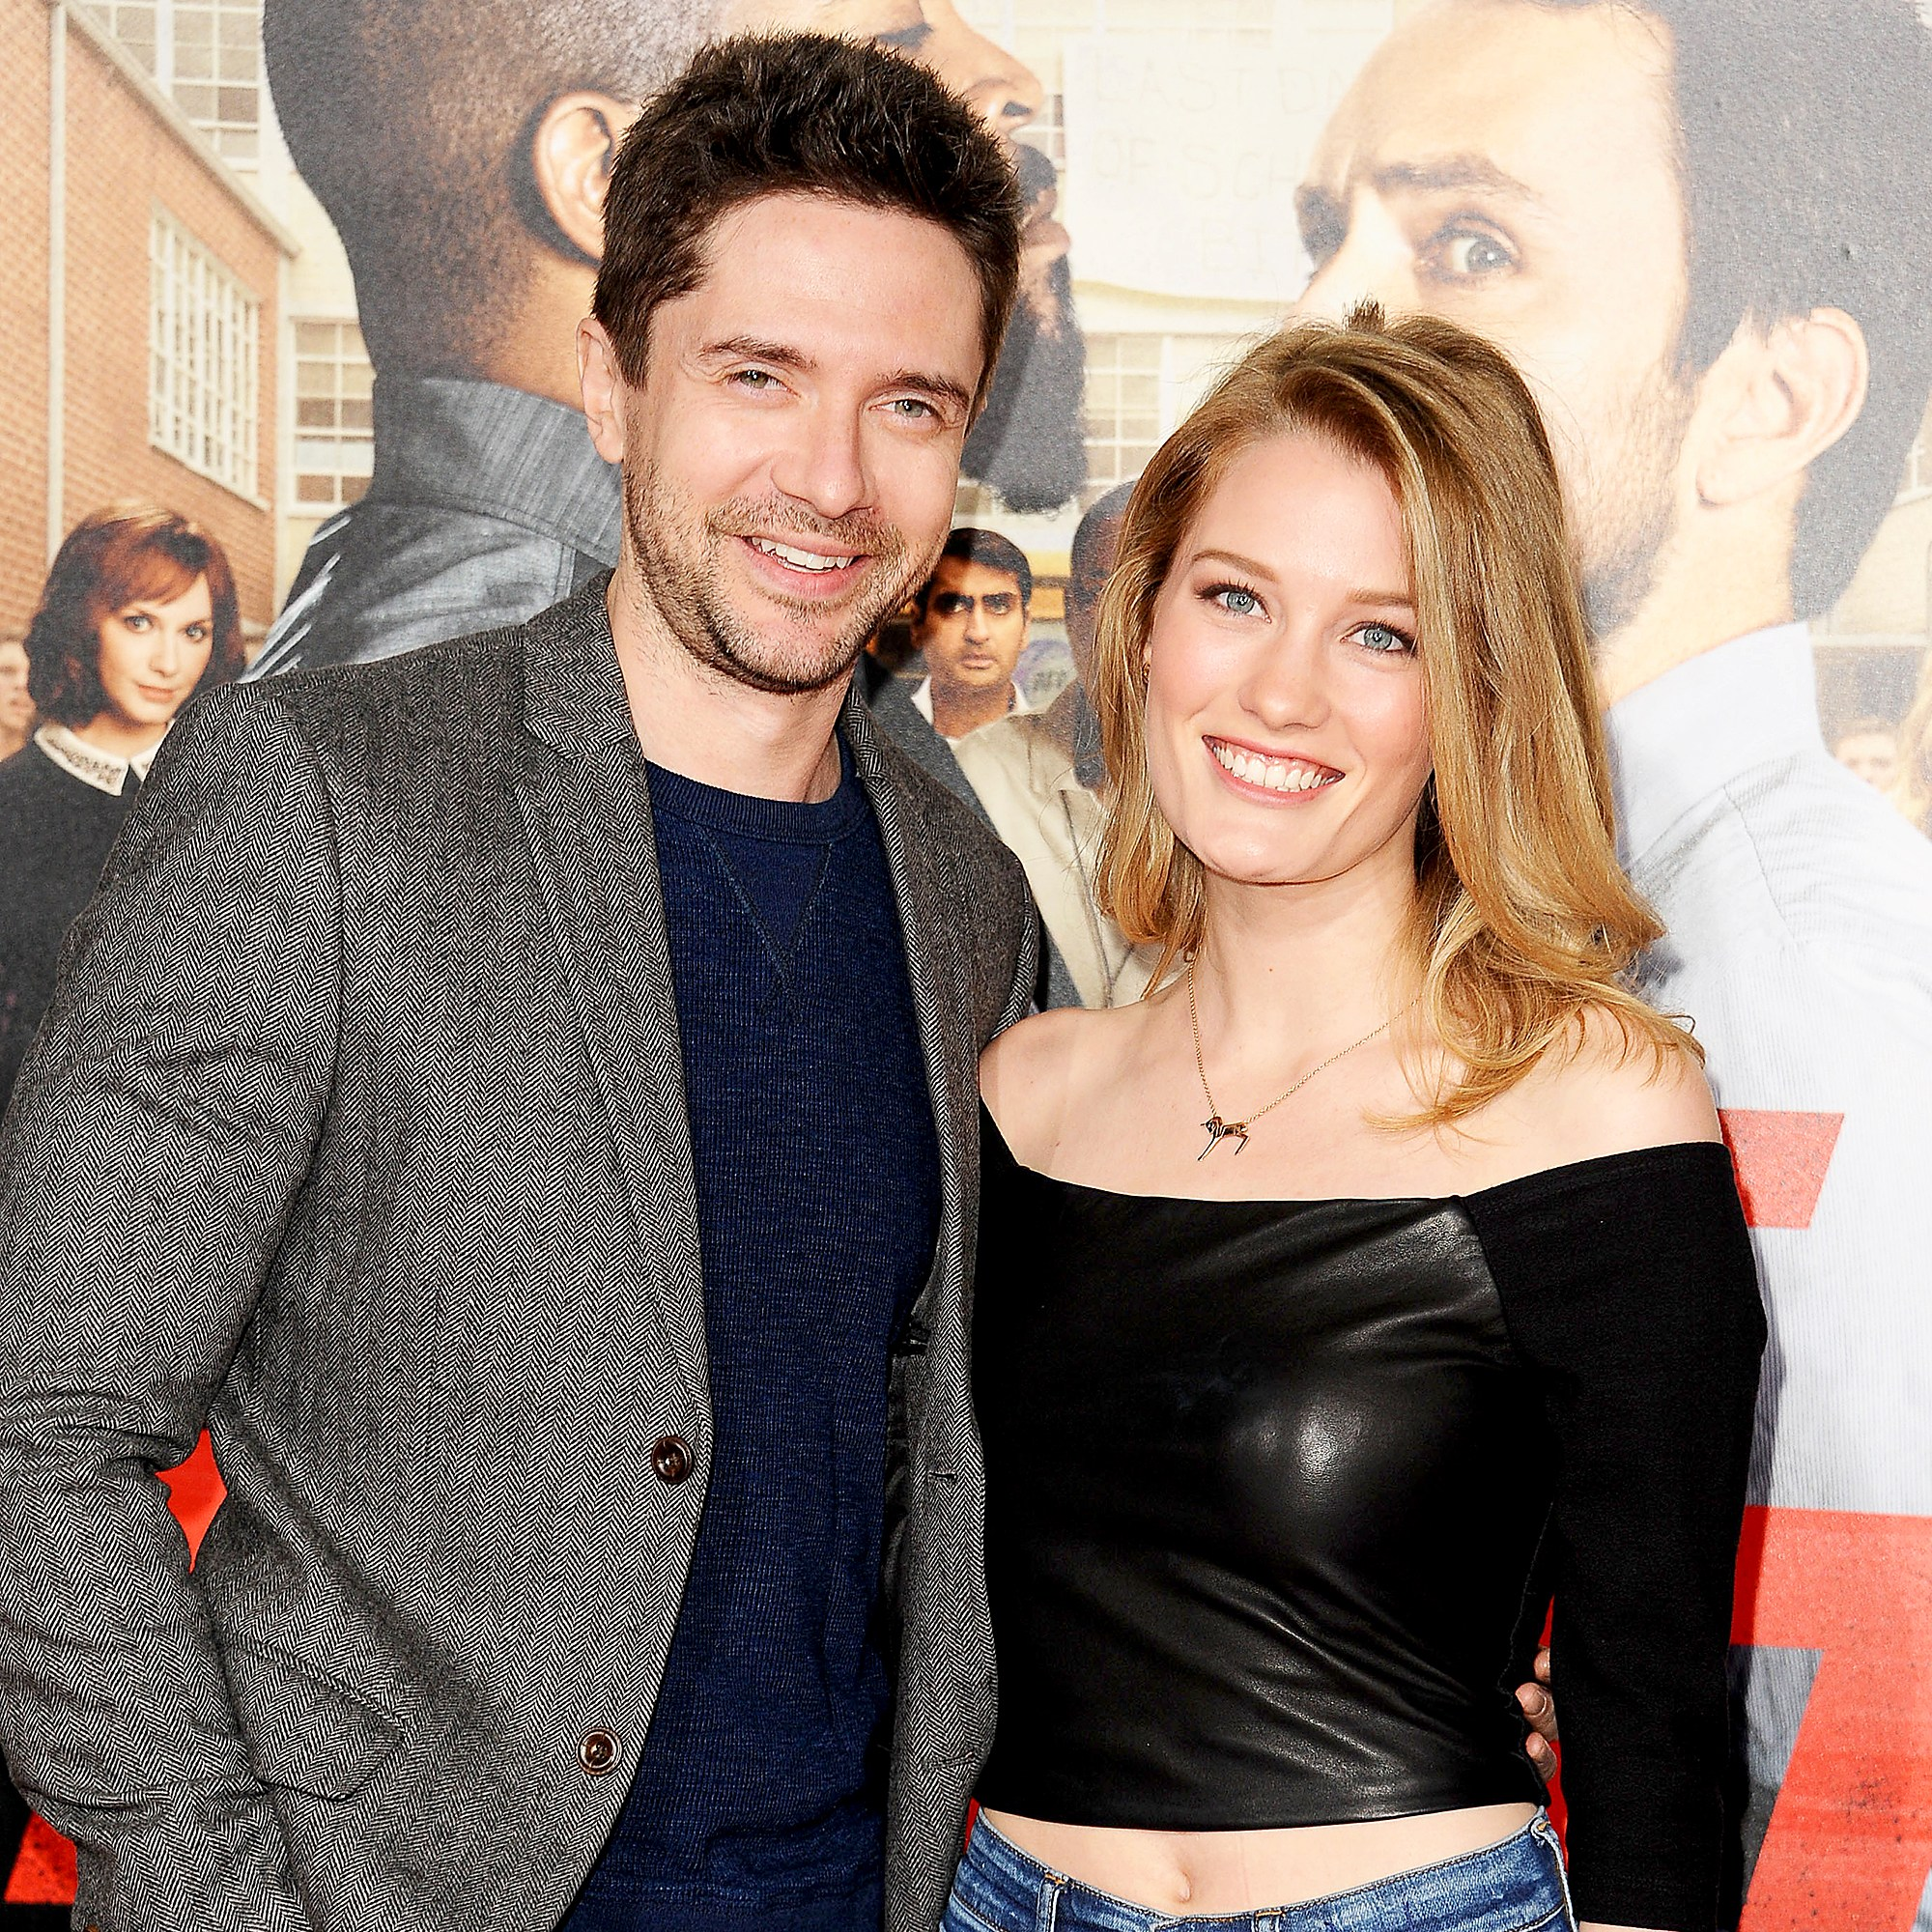 """Topher Grace and wife Ashley Hinshaw attend the premiere of """"Fist Fight"""" at Regency Village Theatre on February 13, 2017 in Westwood, California."""